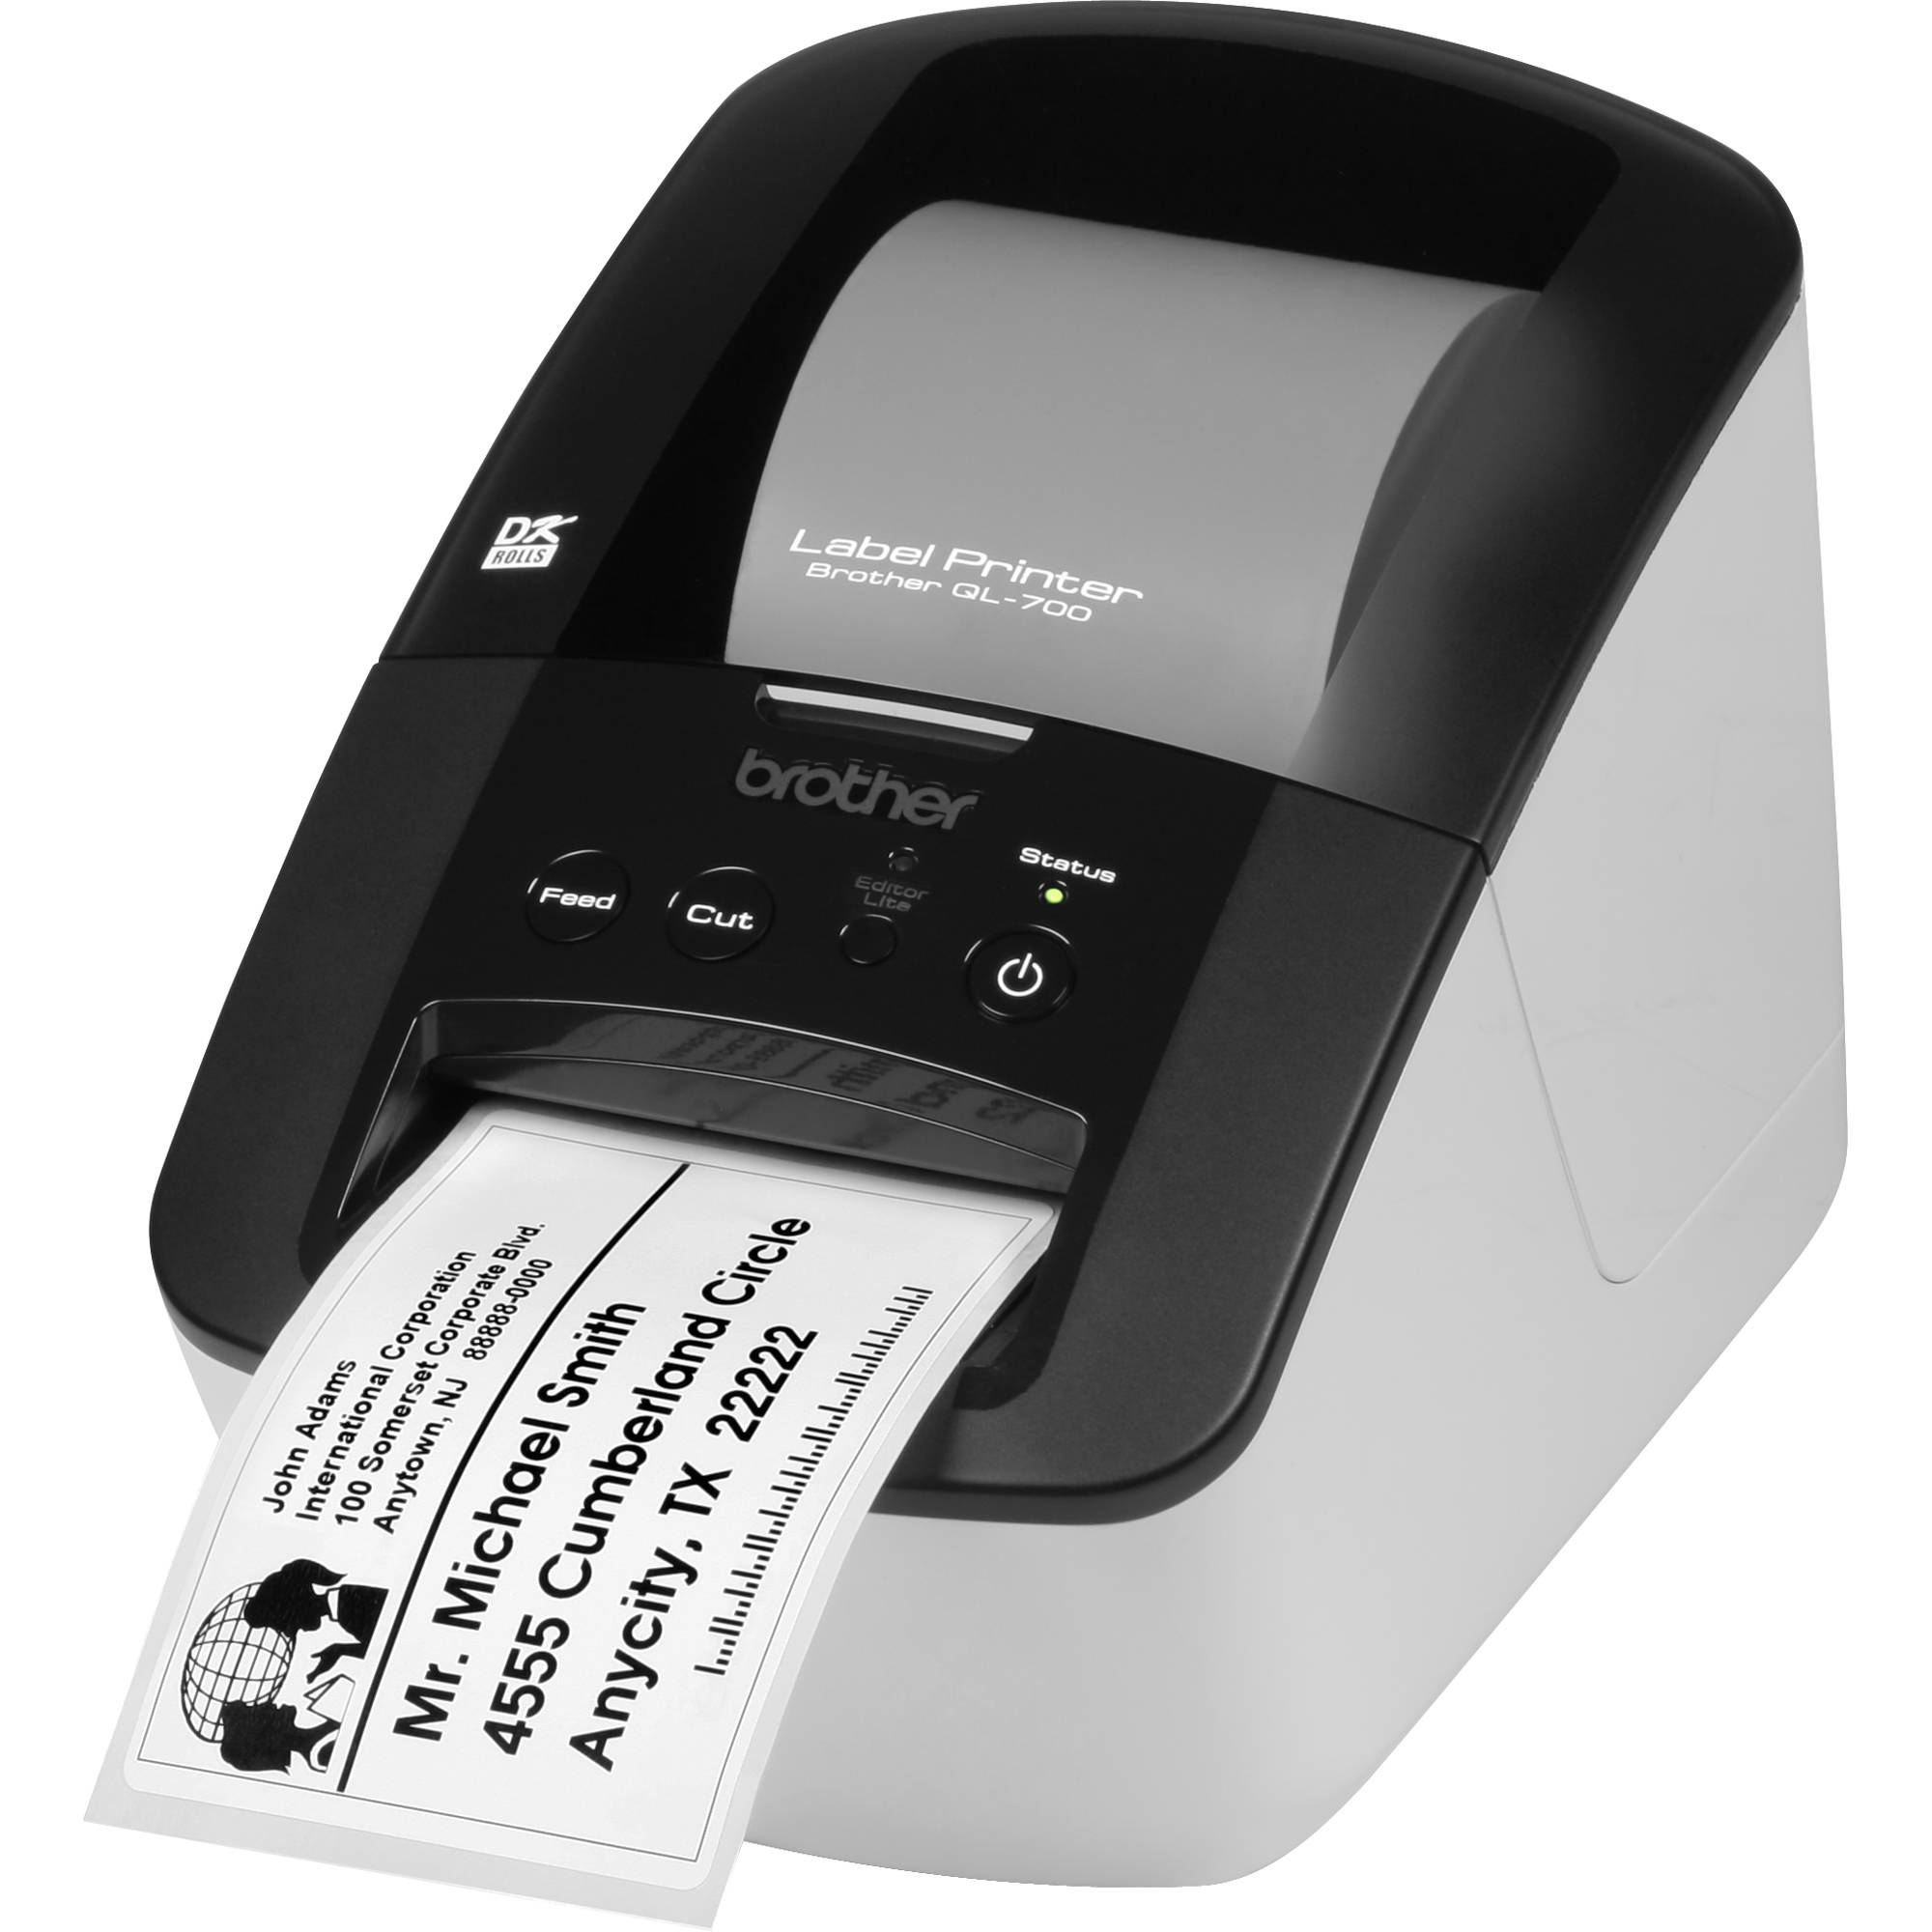 Brother ql 700 high speed professional label printer ql for Brother label printer templates